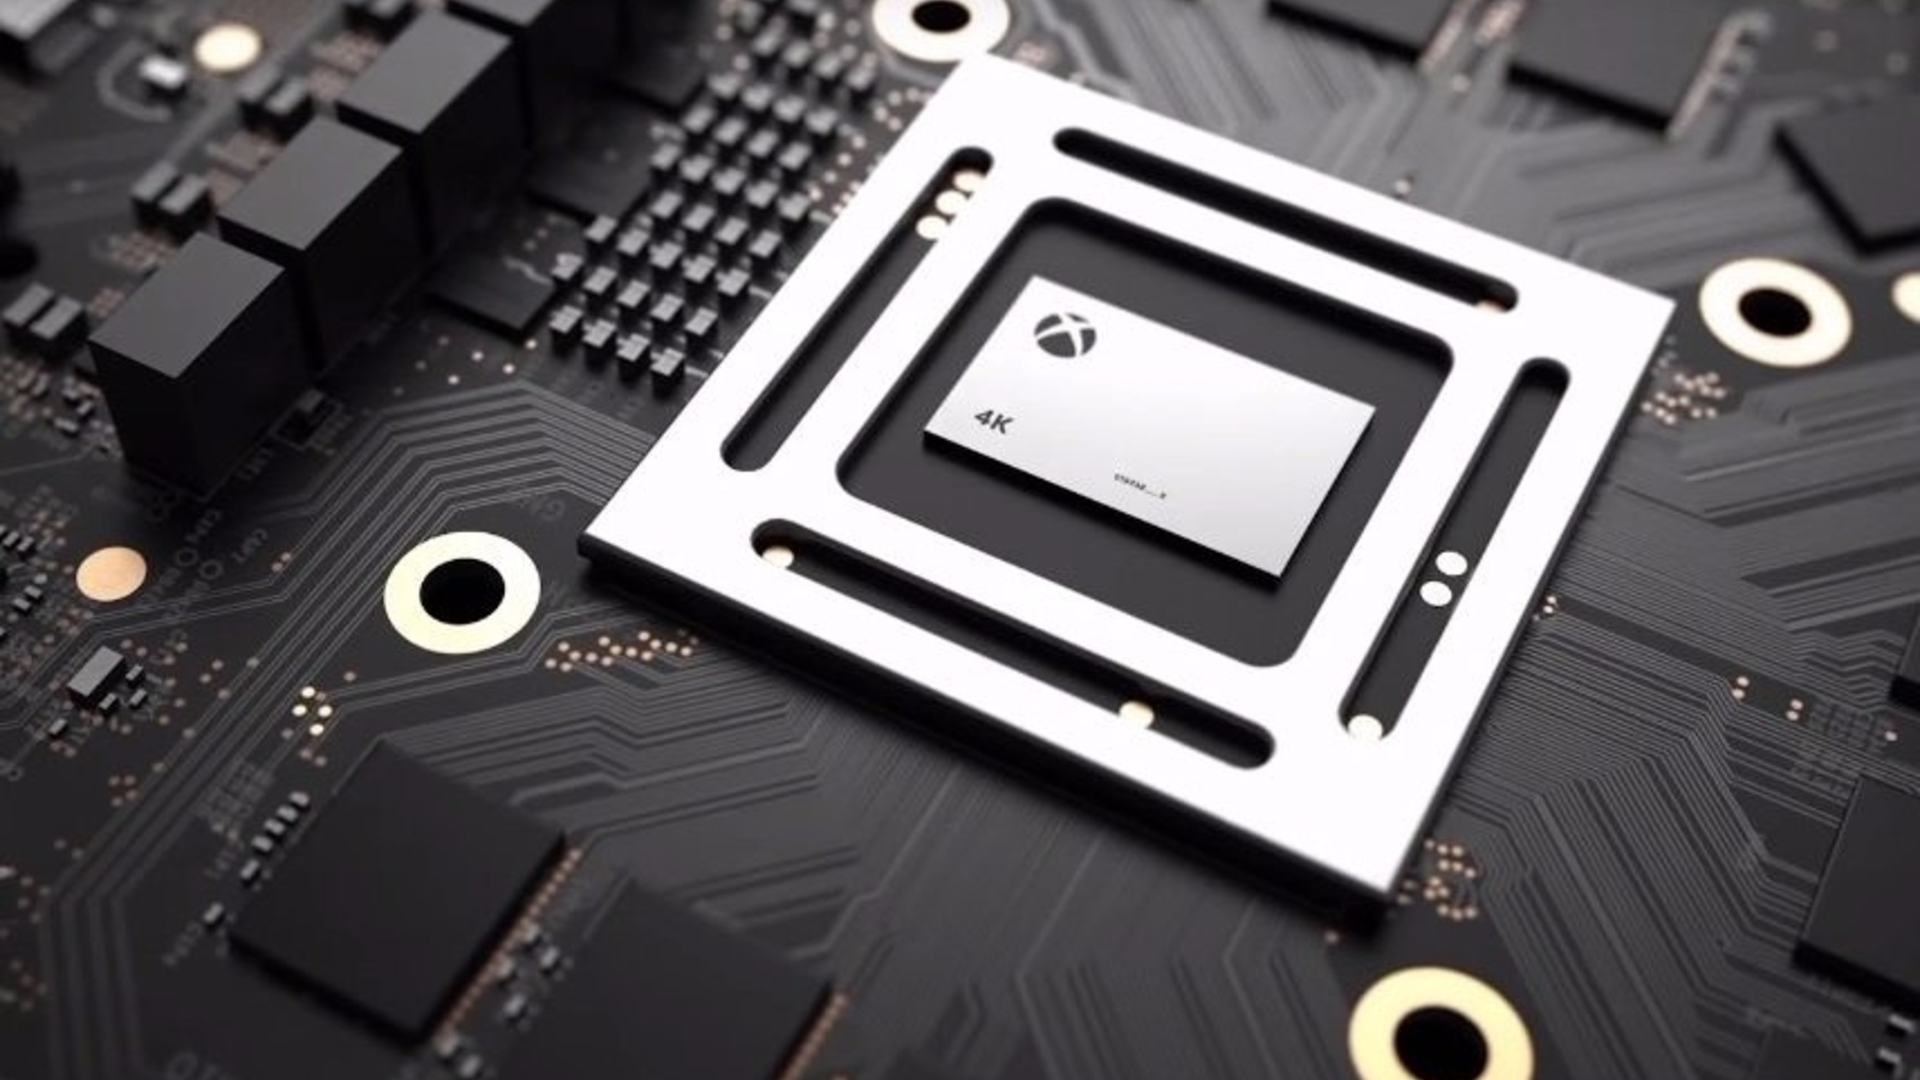 Microsoft on Project Scorpio, PS4 Pro marketing and Xbox tweets